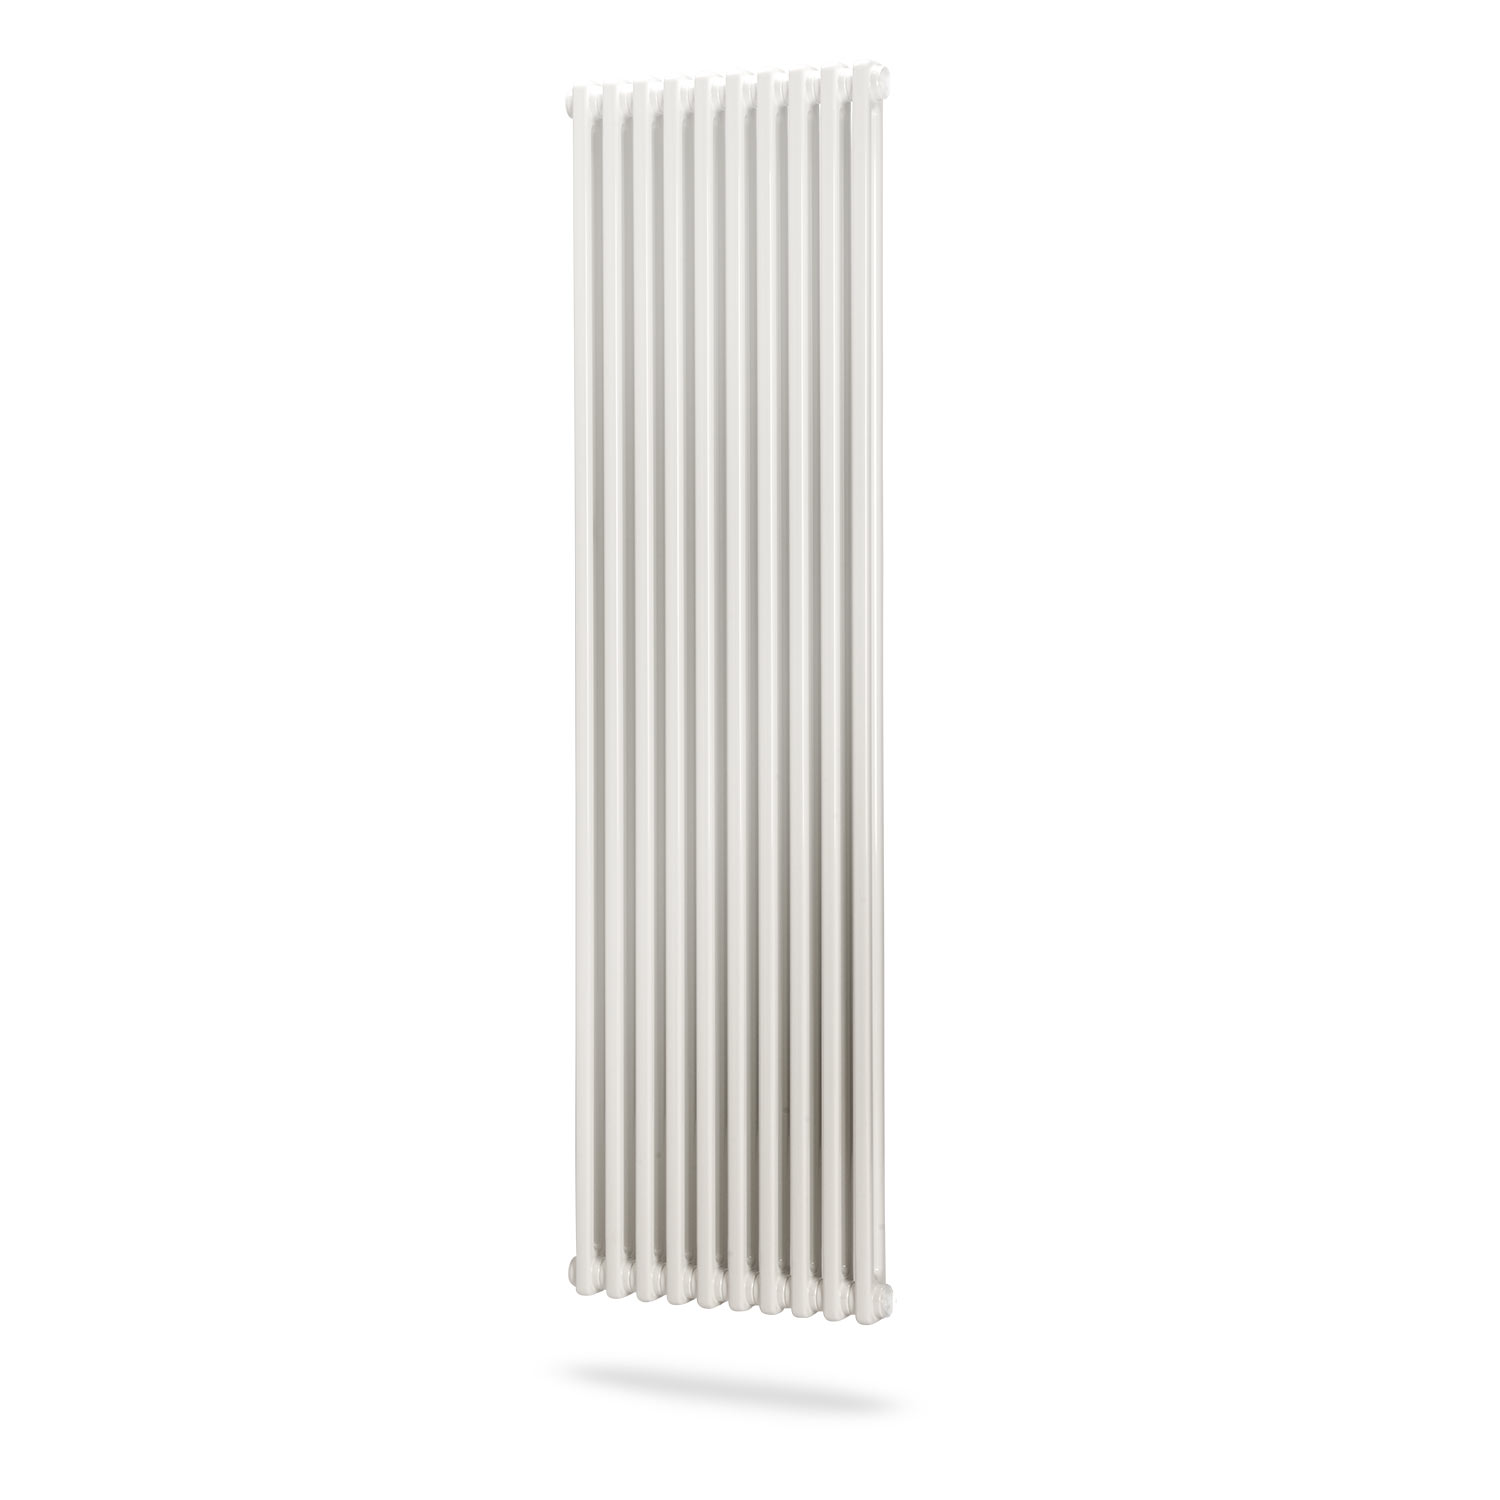 Delta v radson for Household radiator design